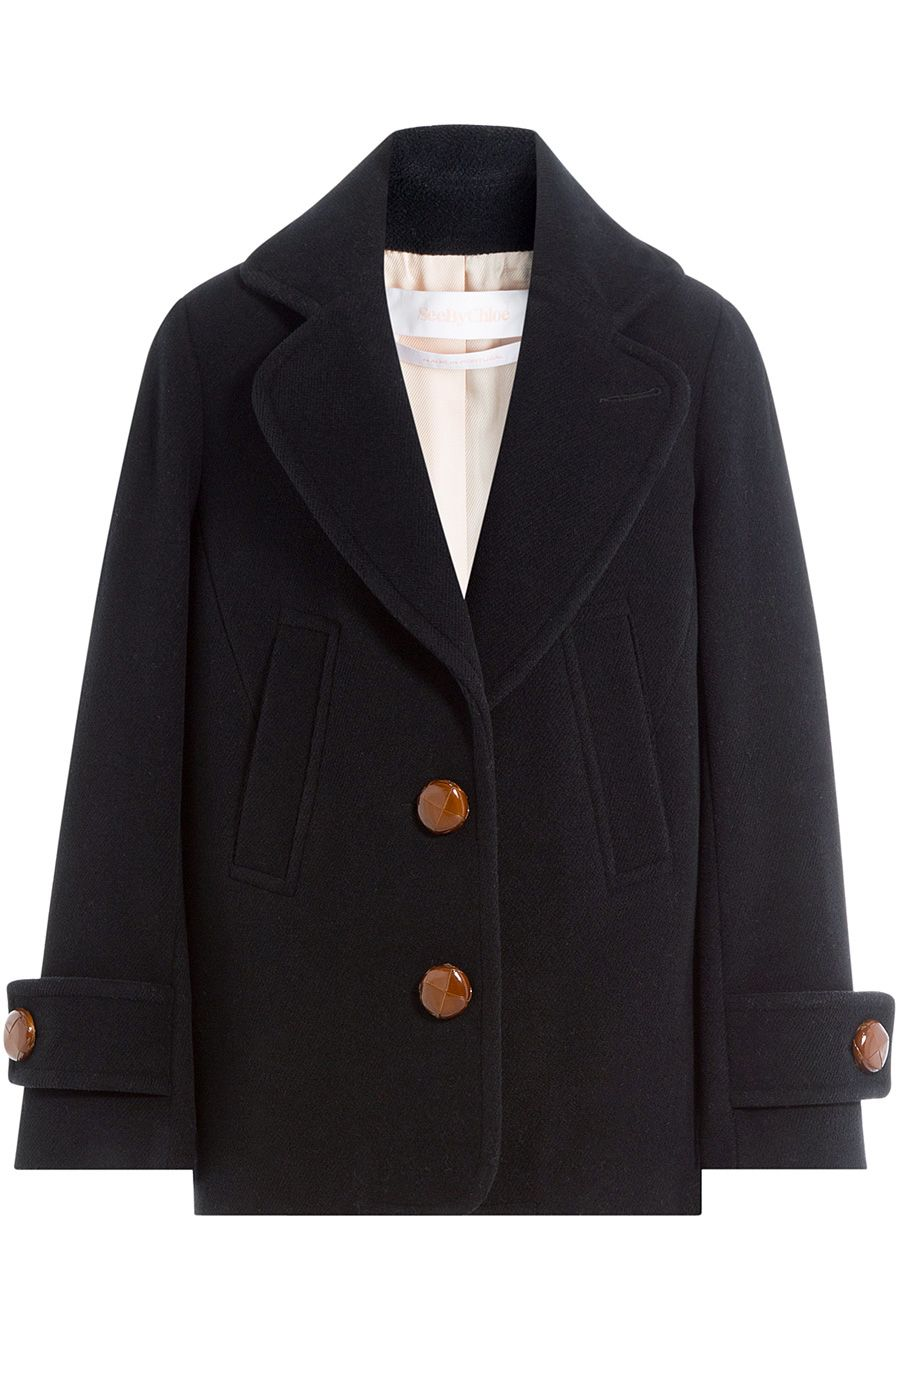 9ad1d230804cf SEE BY CHLOÉ Coat With Oversized Buttons. #seebychloé #cloth #short coat